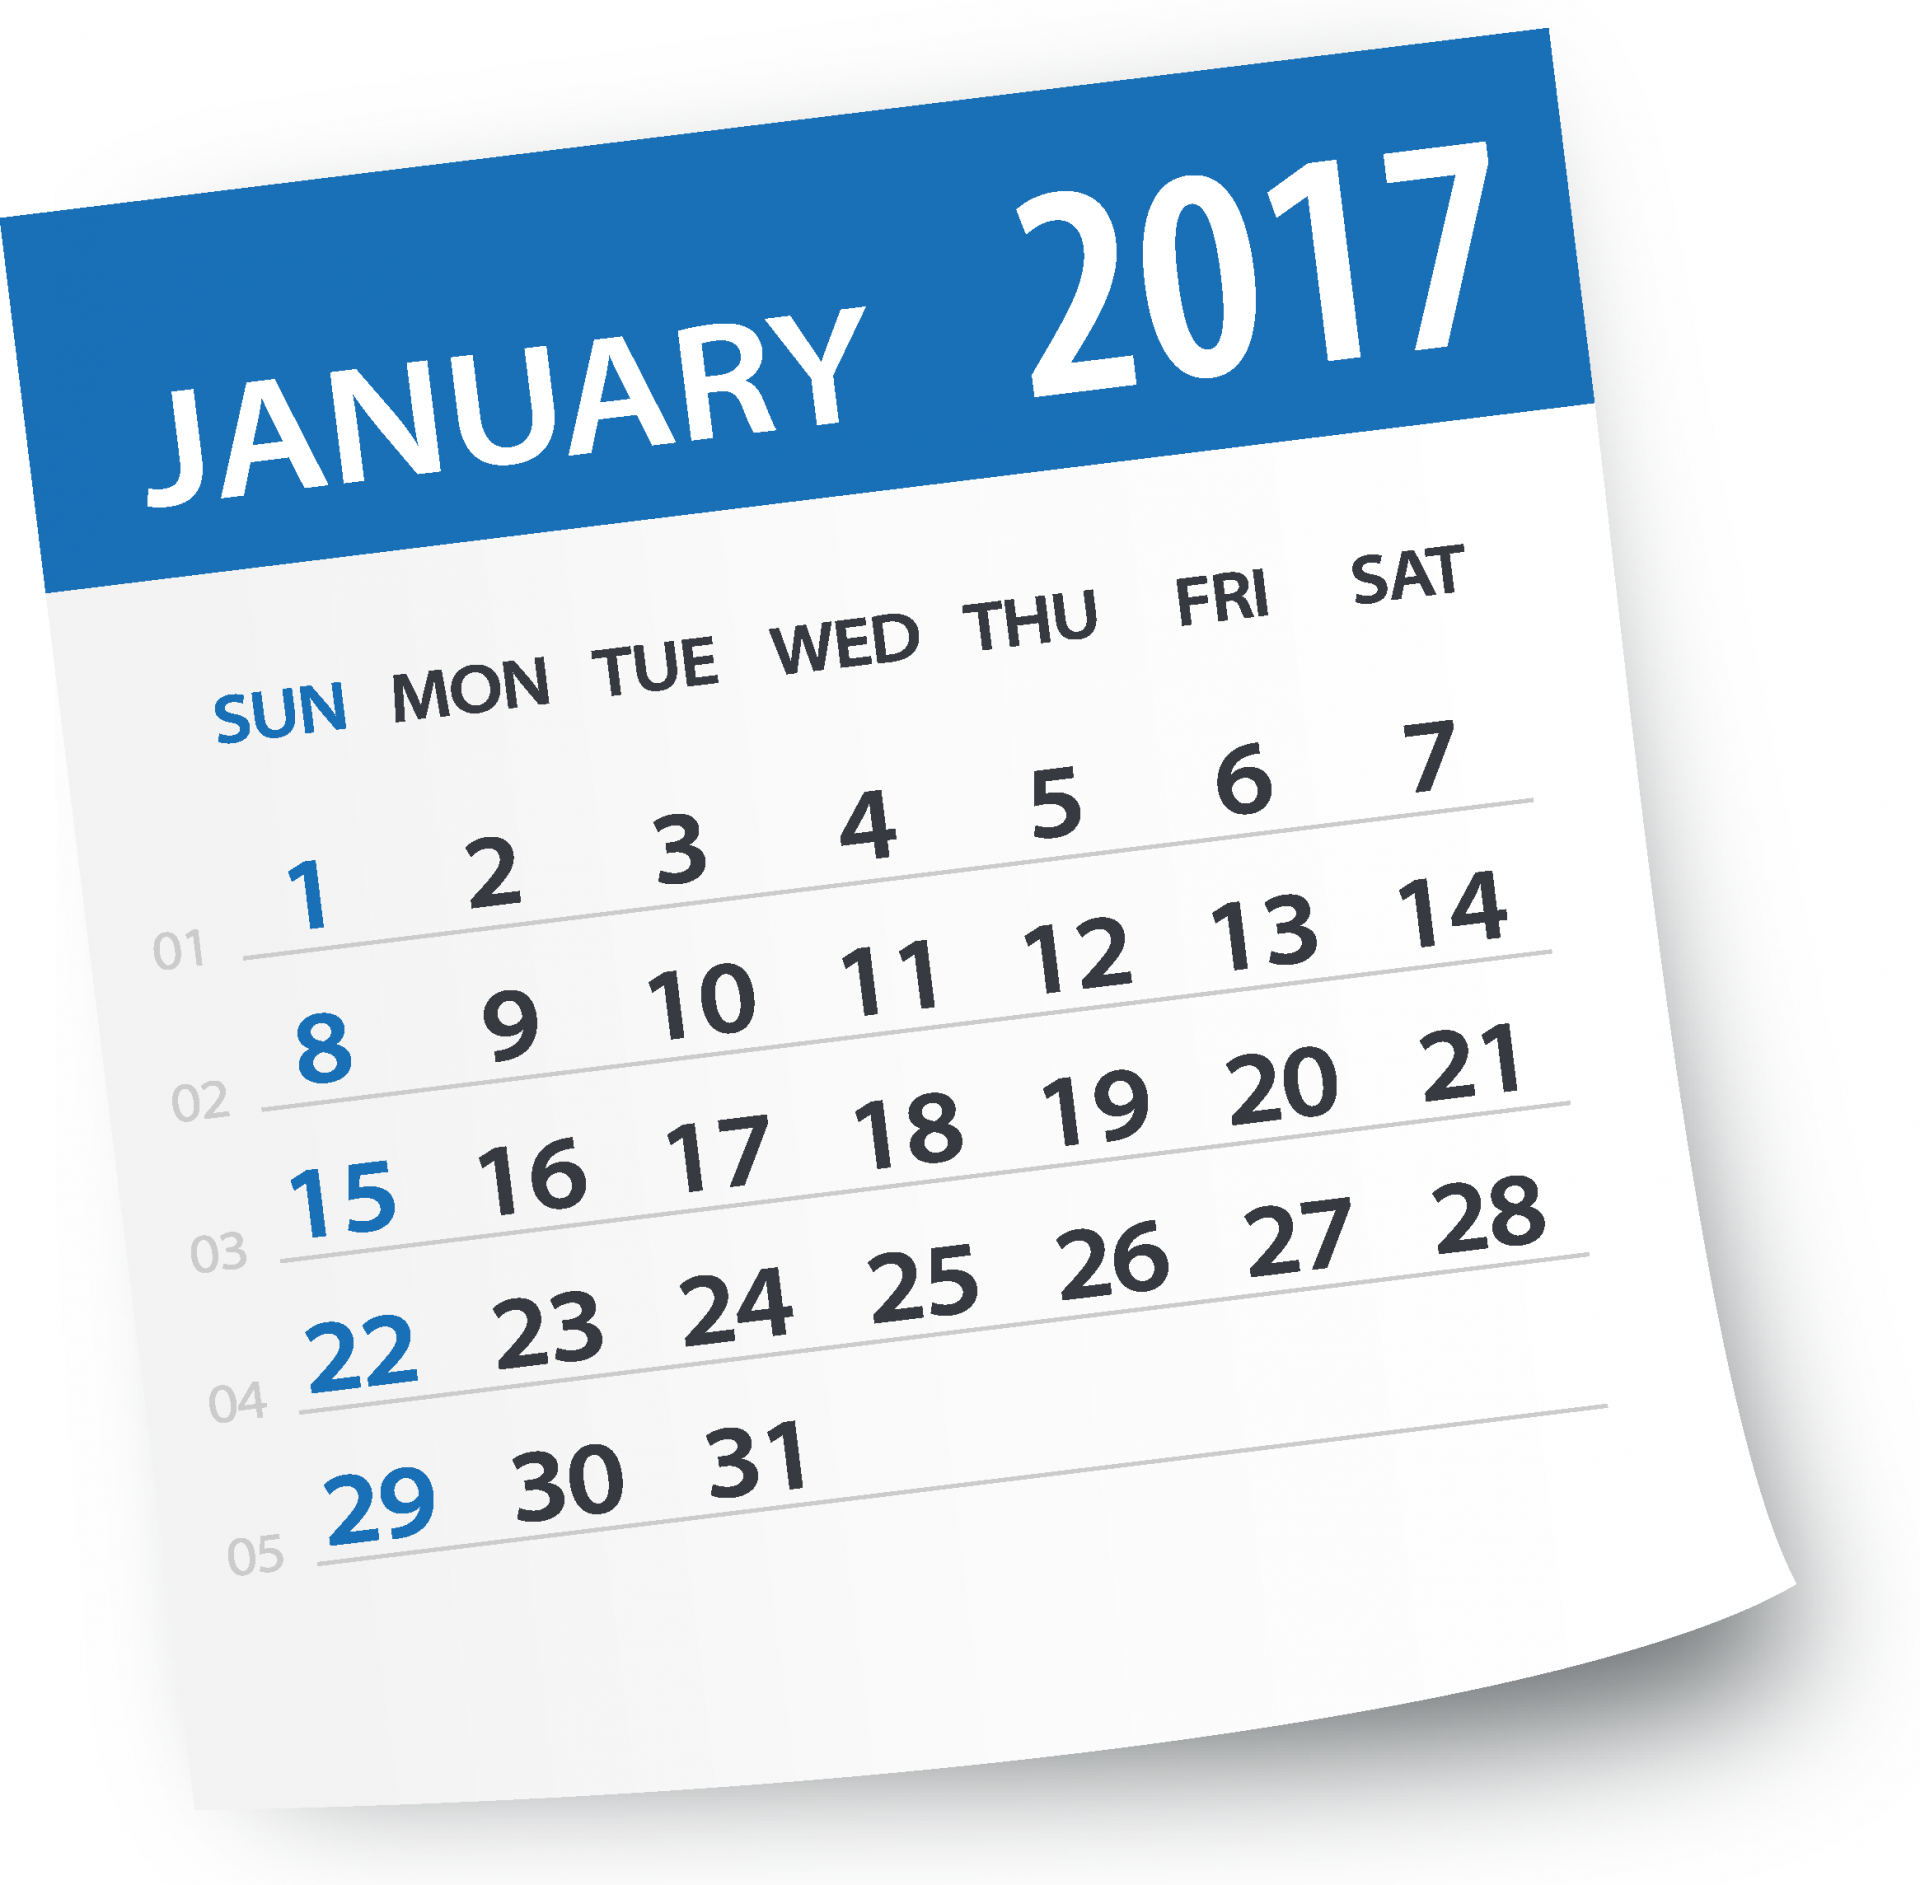 2017 Calendar - Washington DC Public Relation Firm